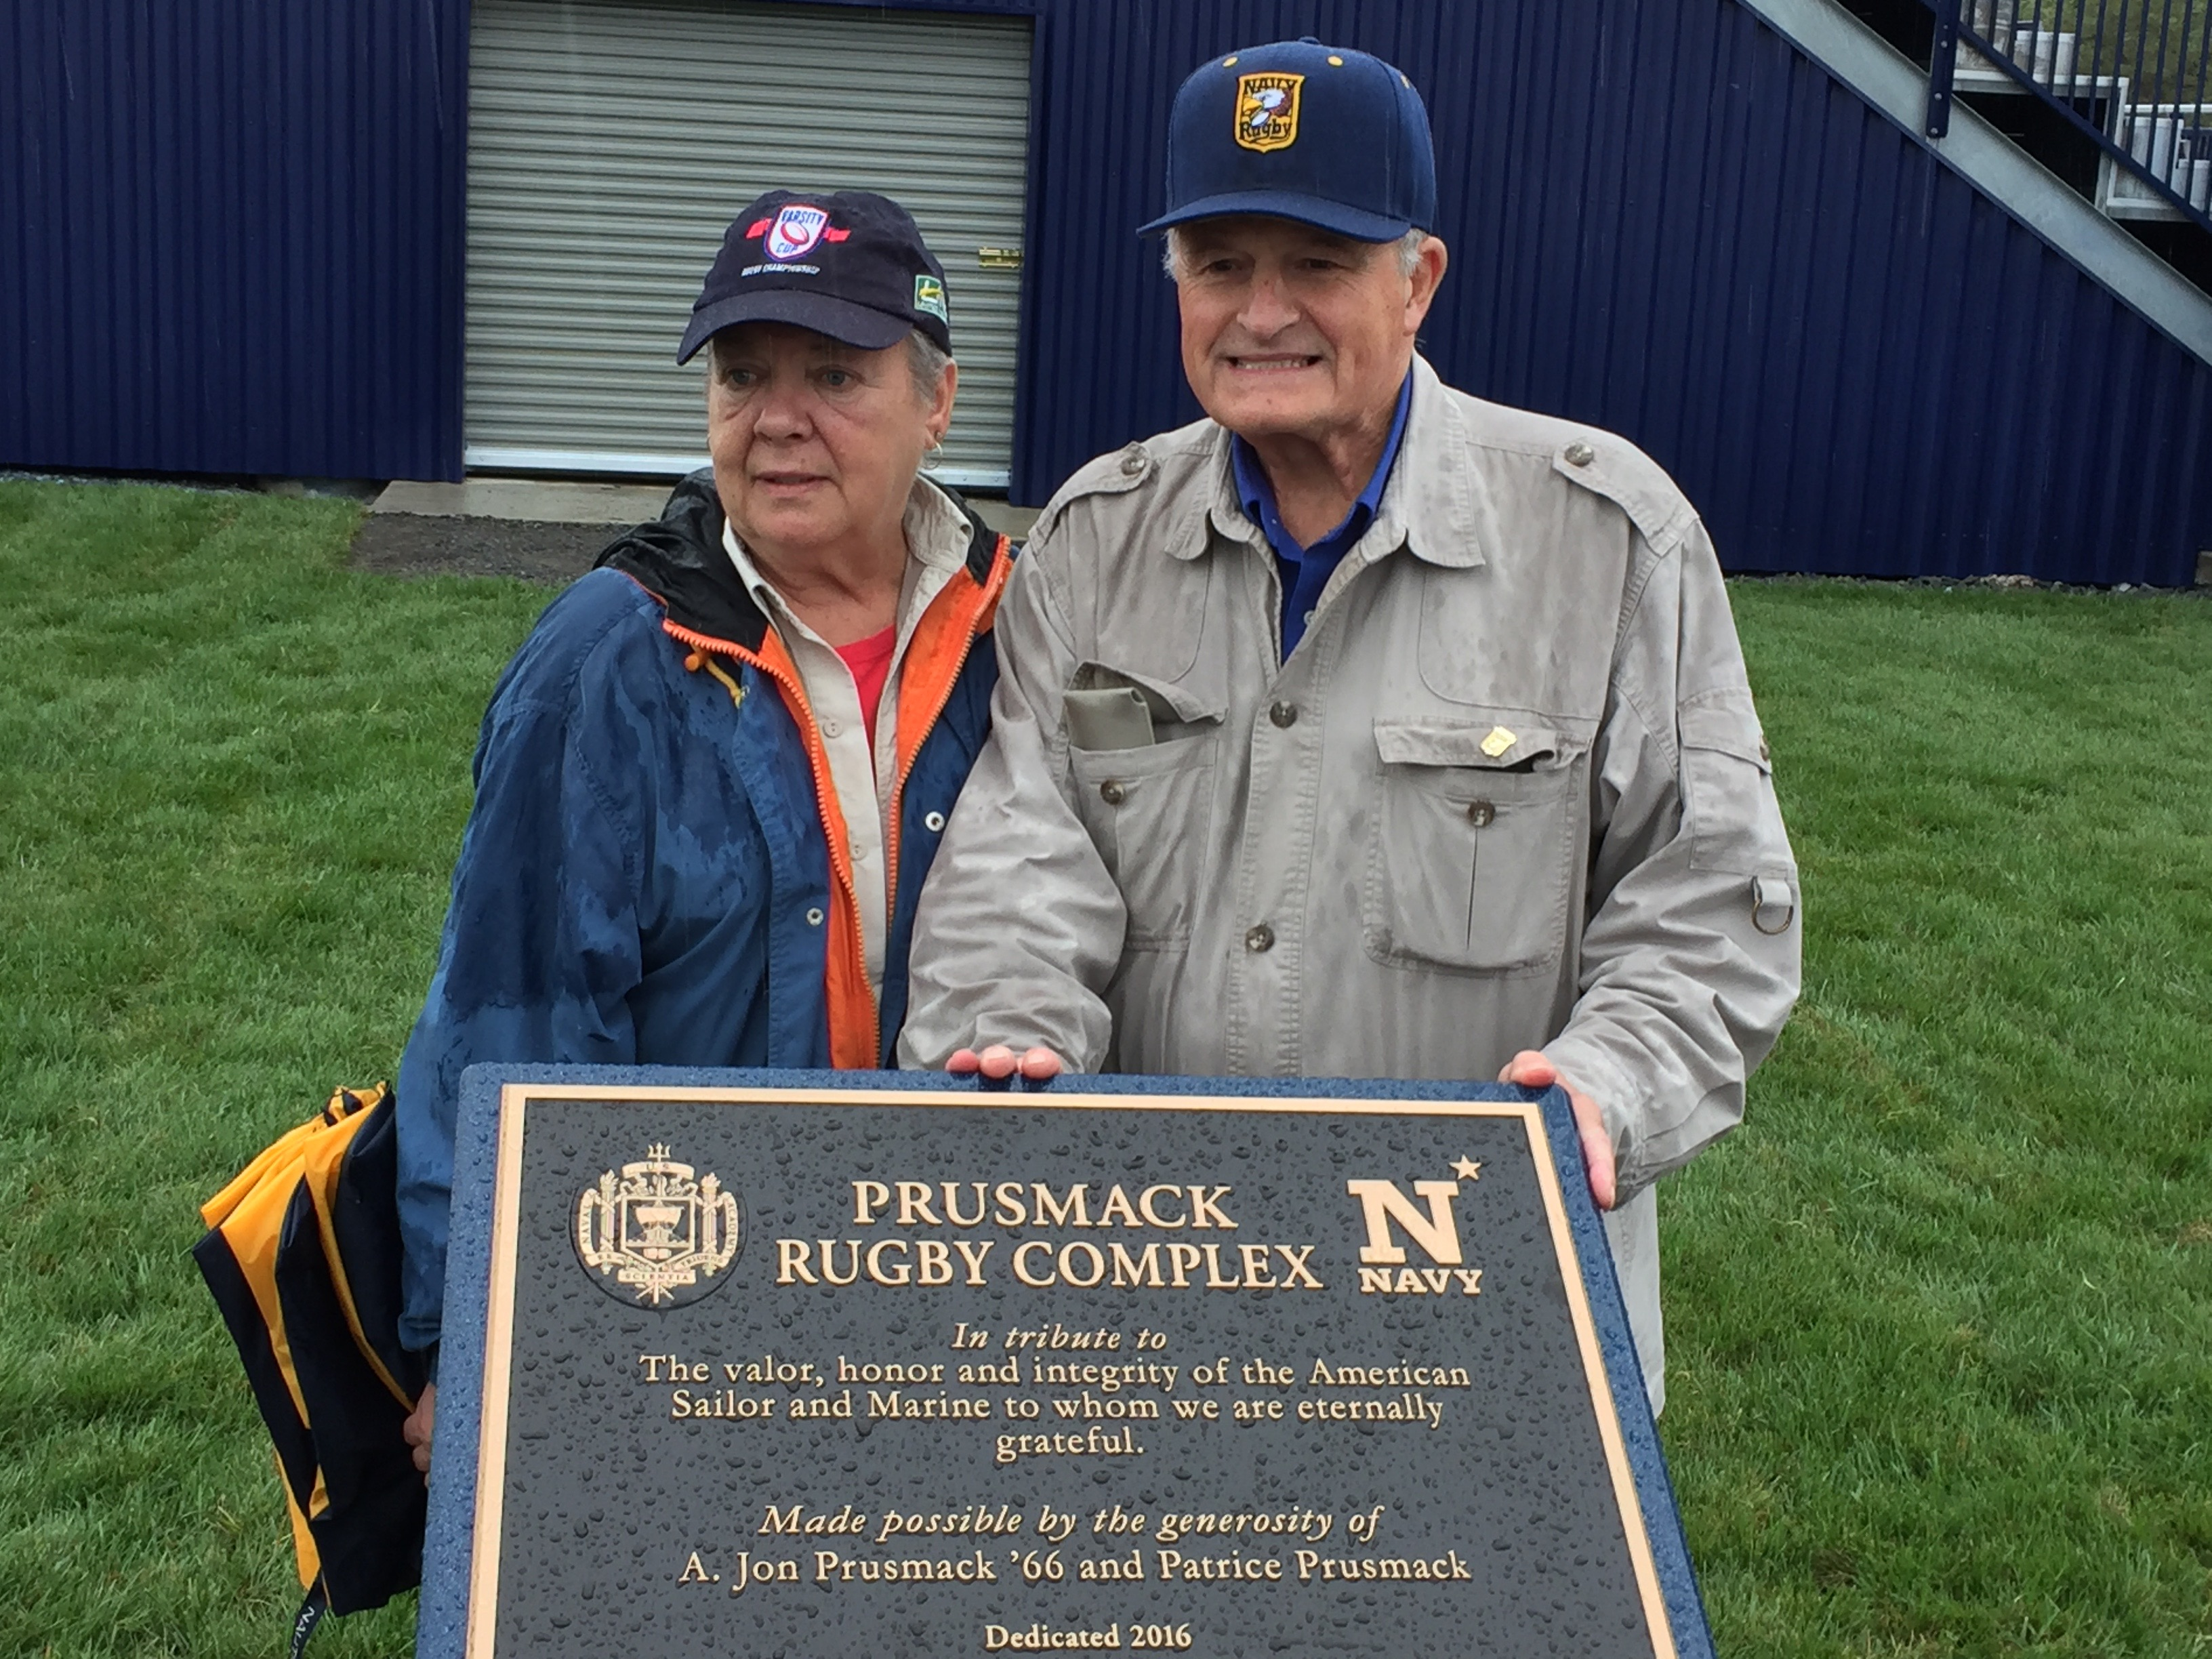 04b111de119 Prusmack Rugby Complex Dedication at U.S. Naval Academy + USA Sevens Expands